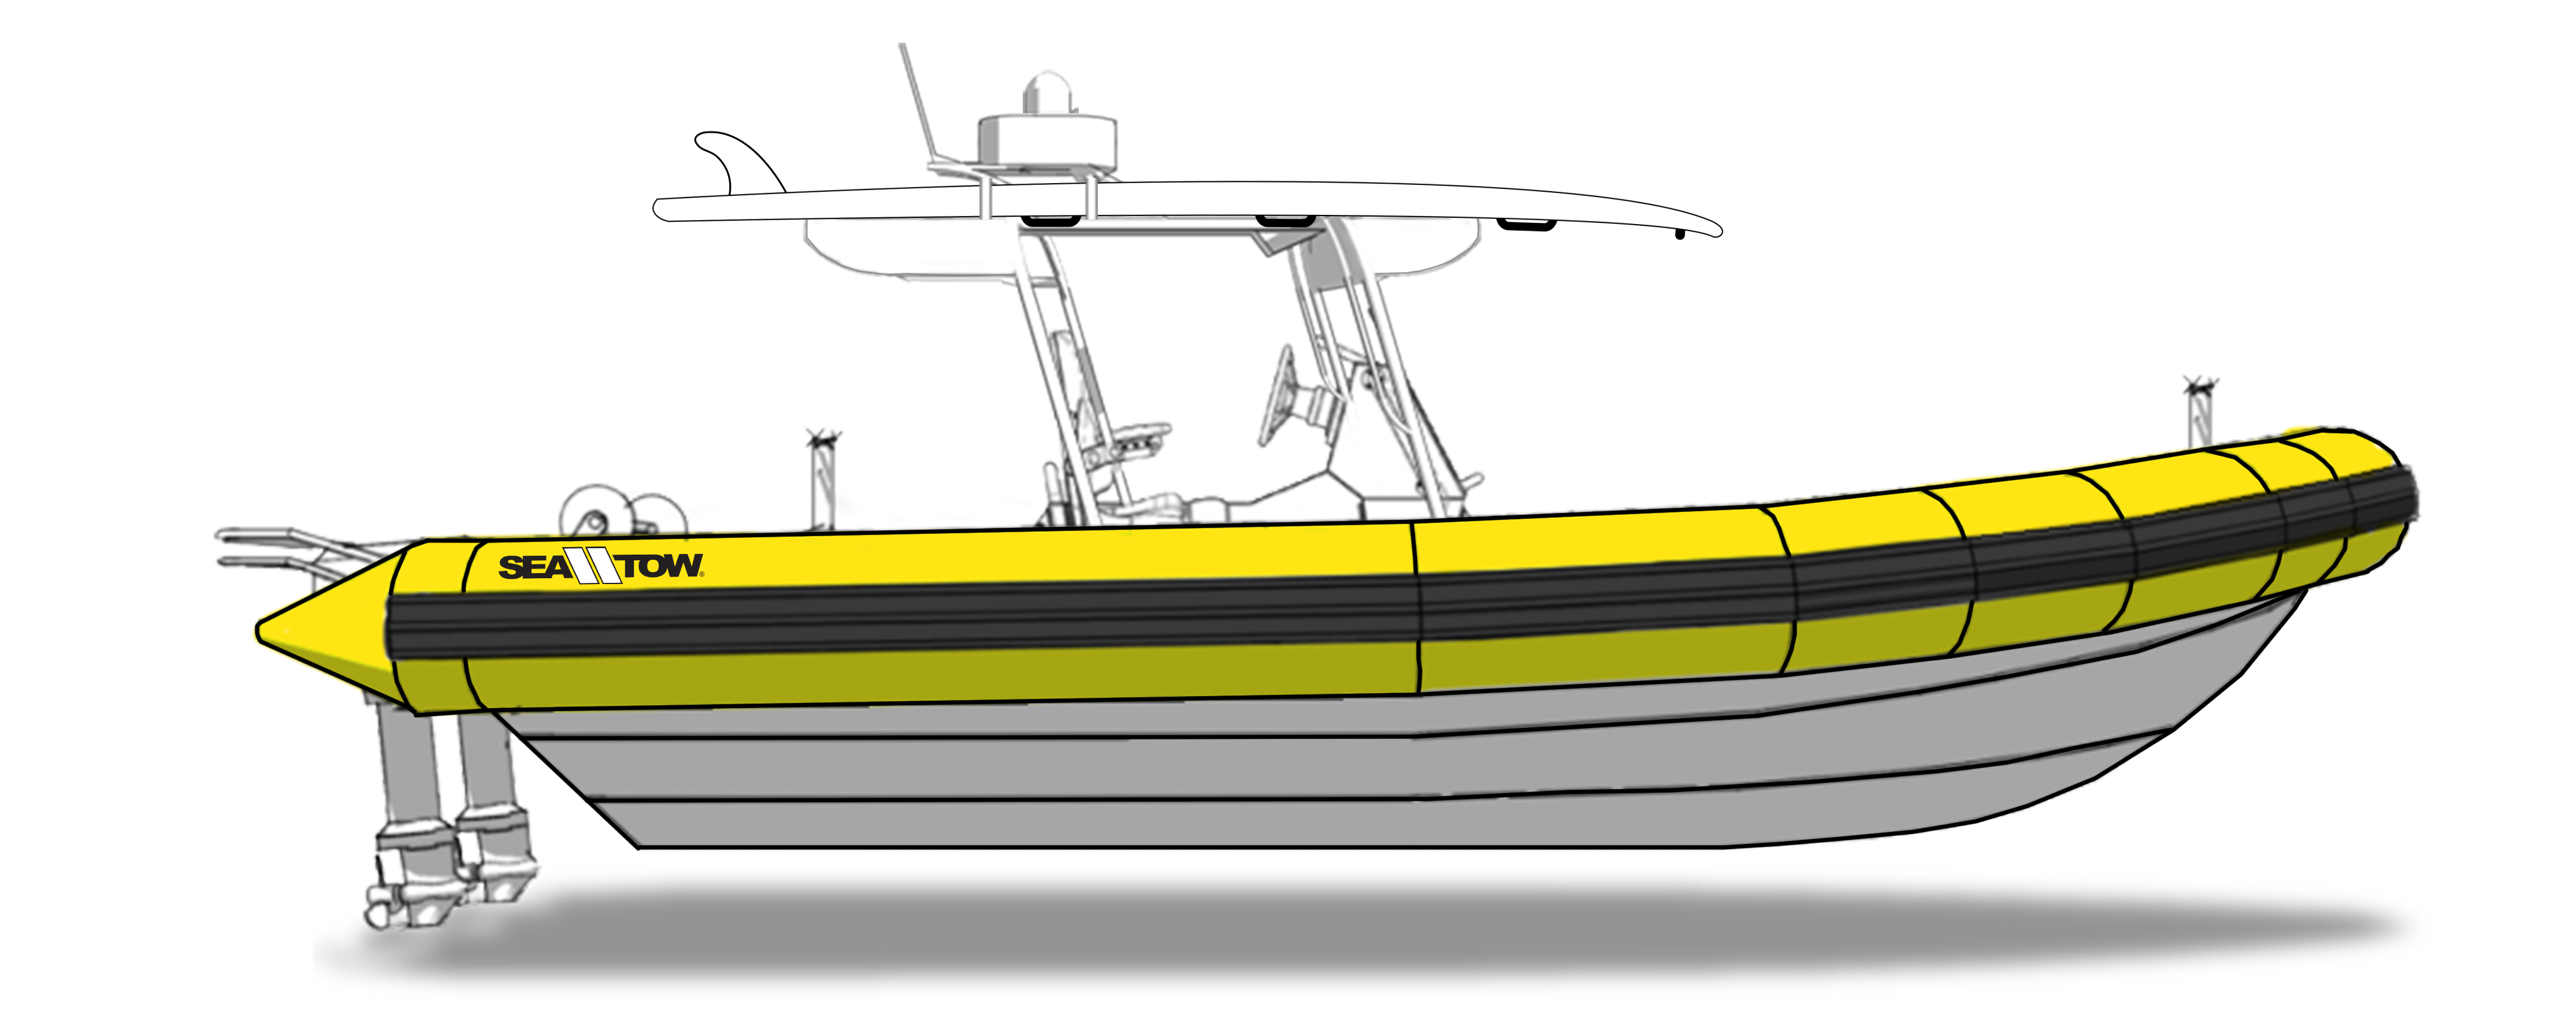 Sea Tow Treasure Coast Project RIB